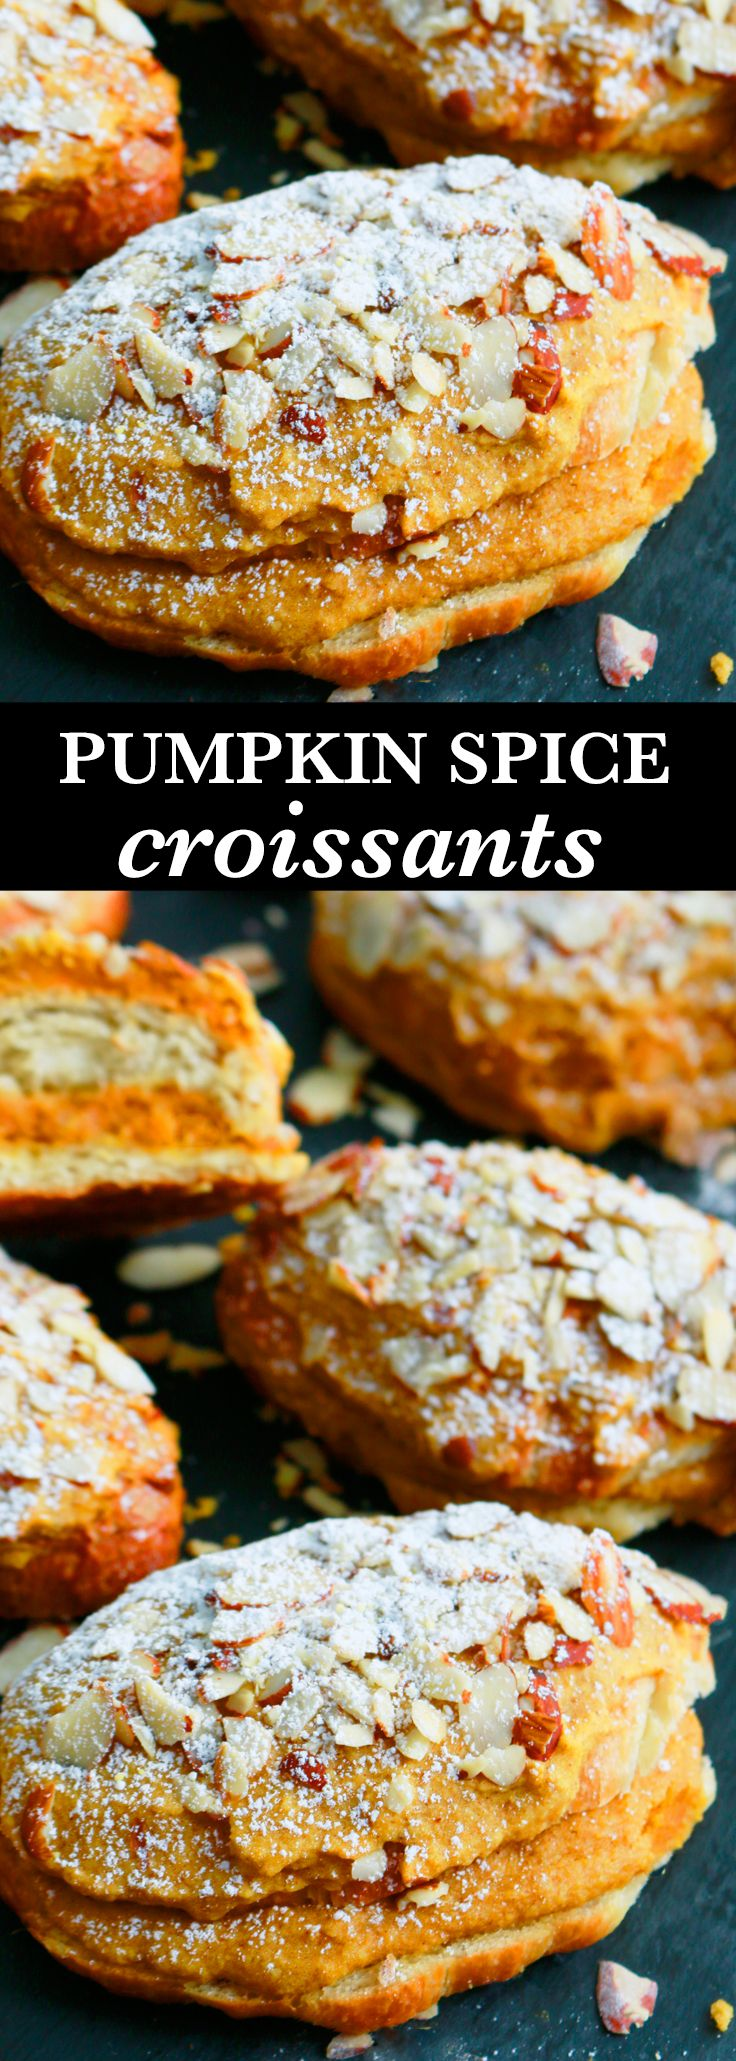 almond croissant | pumpkin croissant | pumpkin recipes | croissant recipes|  croissant breakfast | pumpkin ideas | pumpkin treats | pumpkin pastry | pastry recipes |